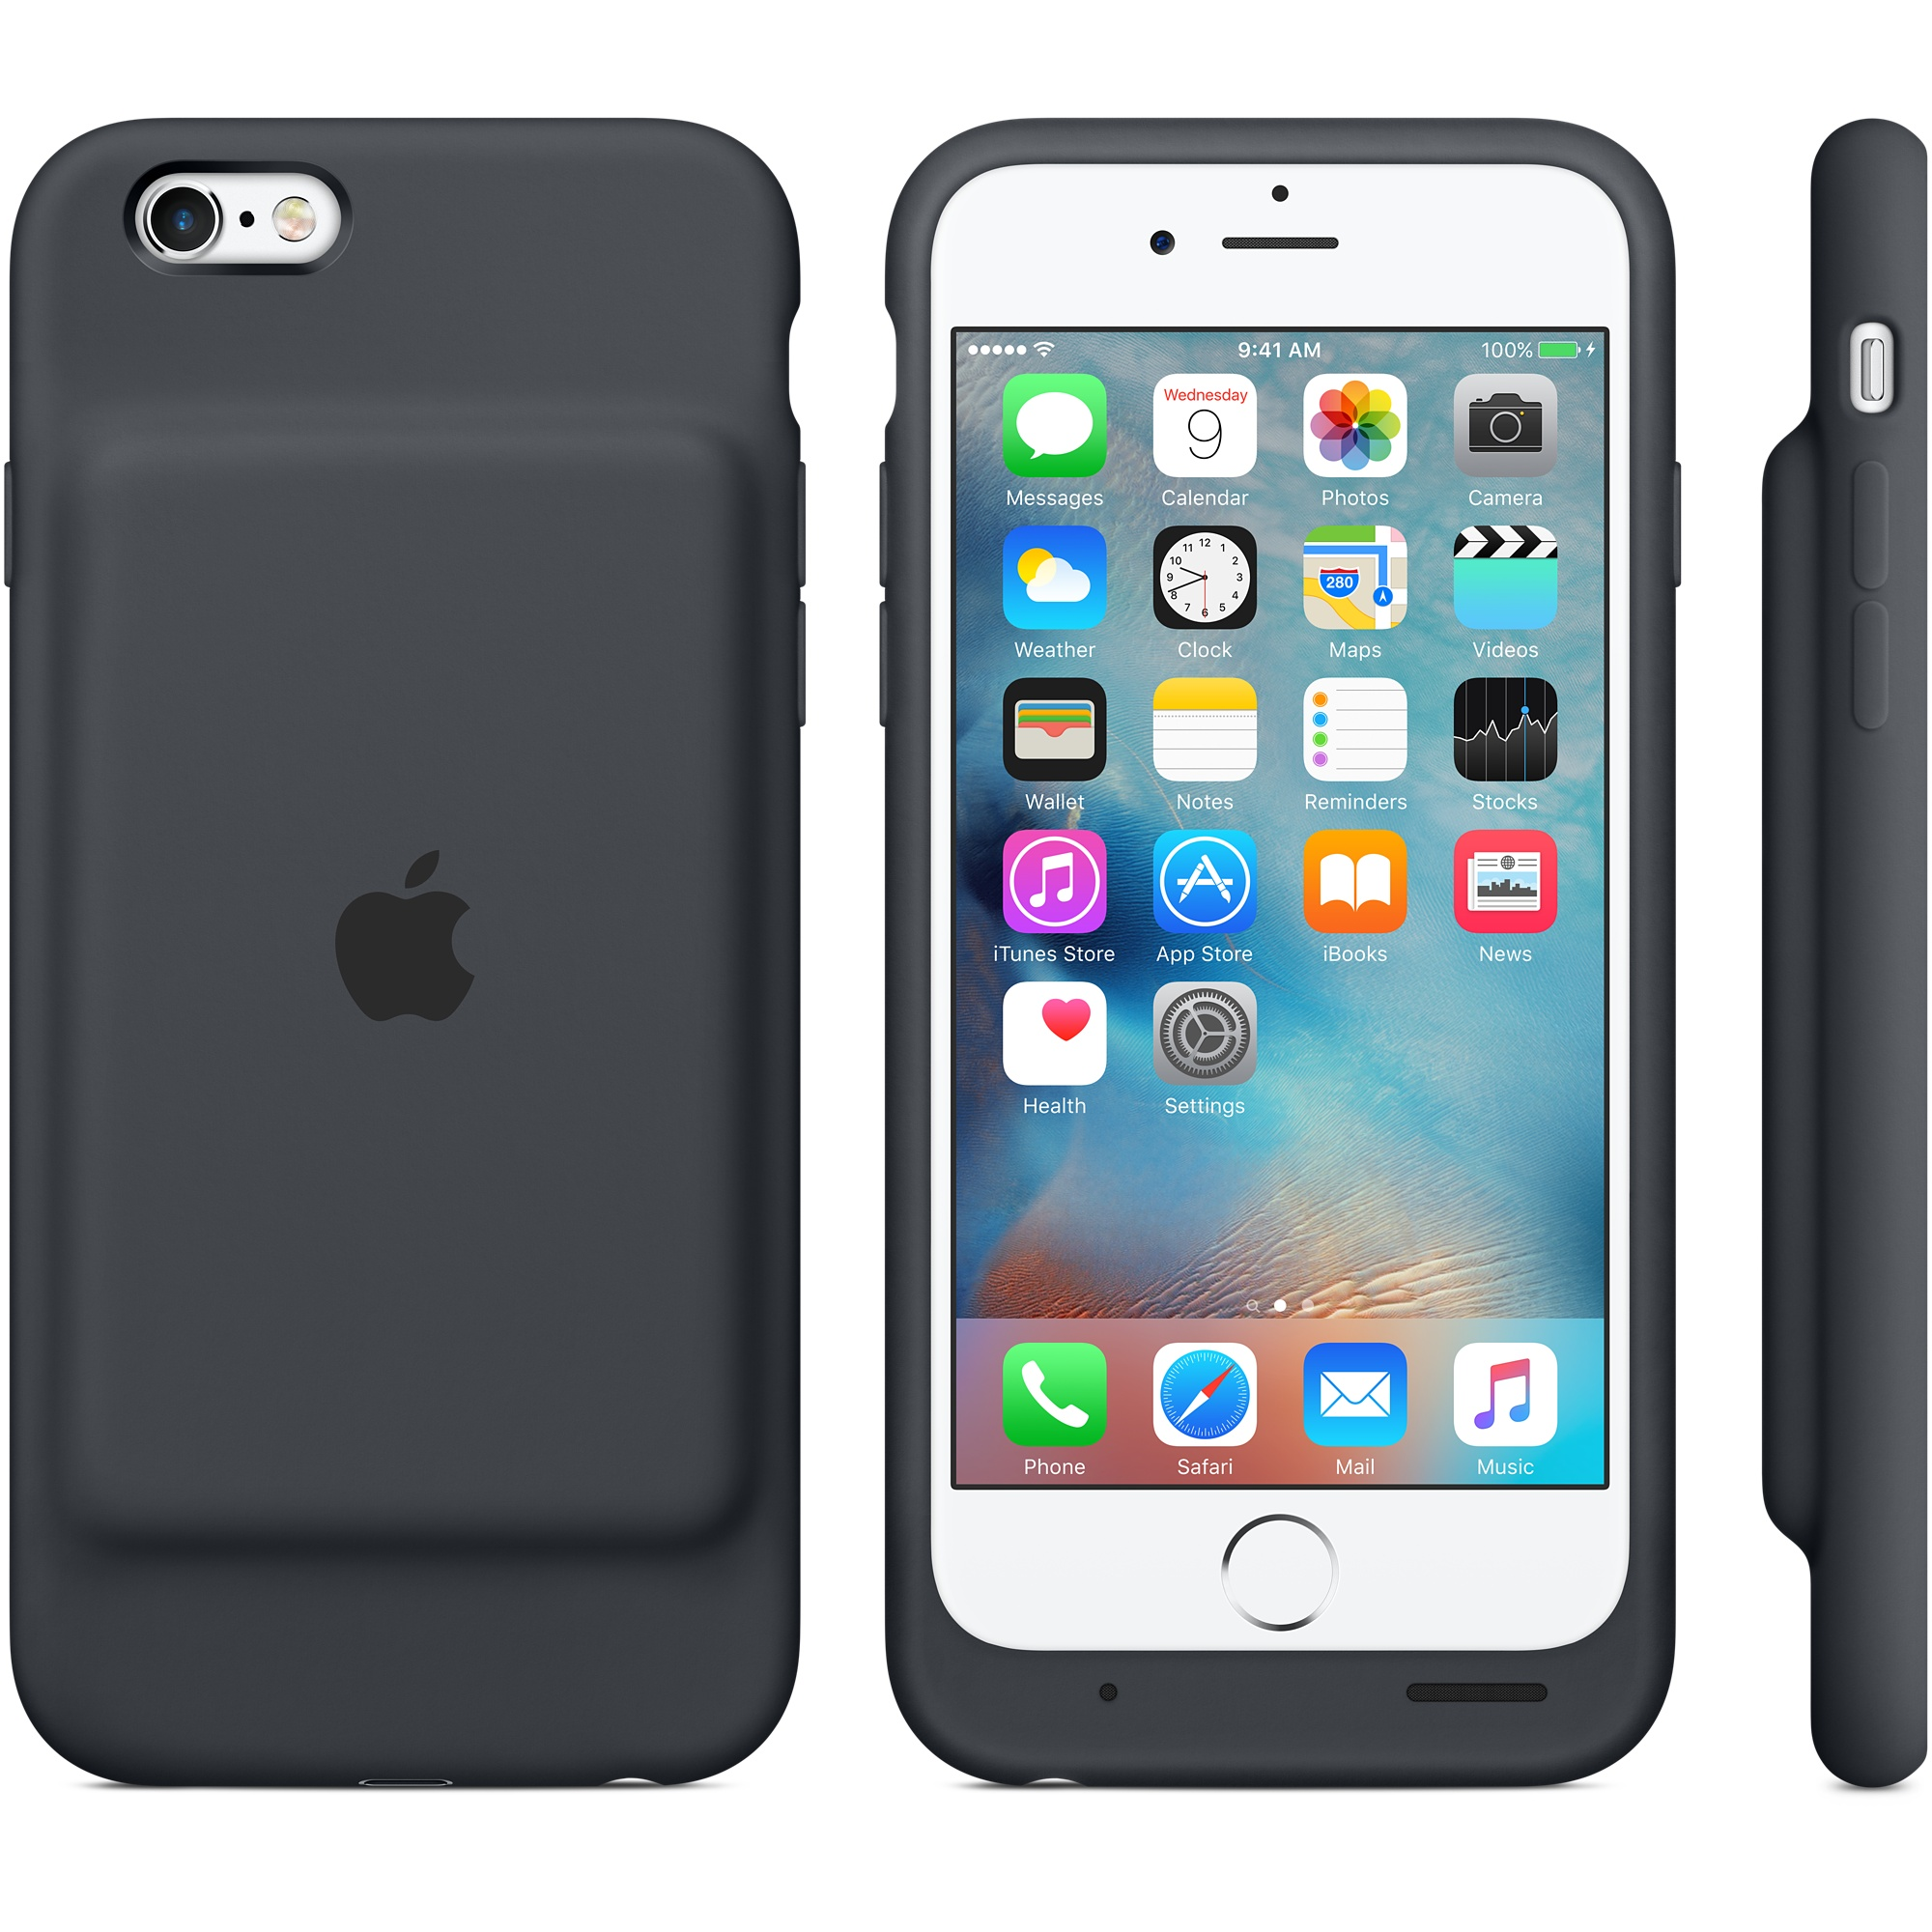 La Smart Battery Case di Apple